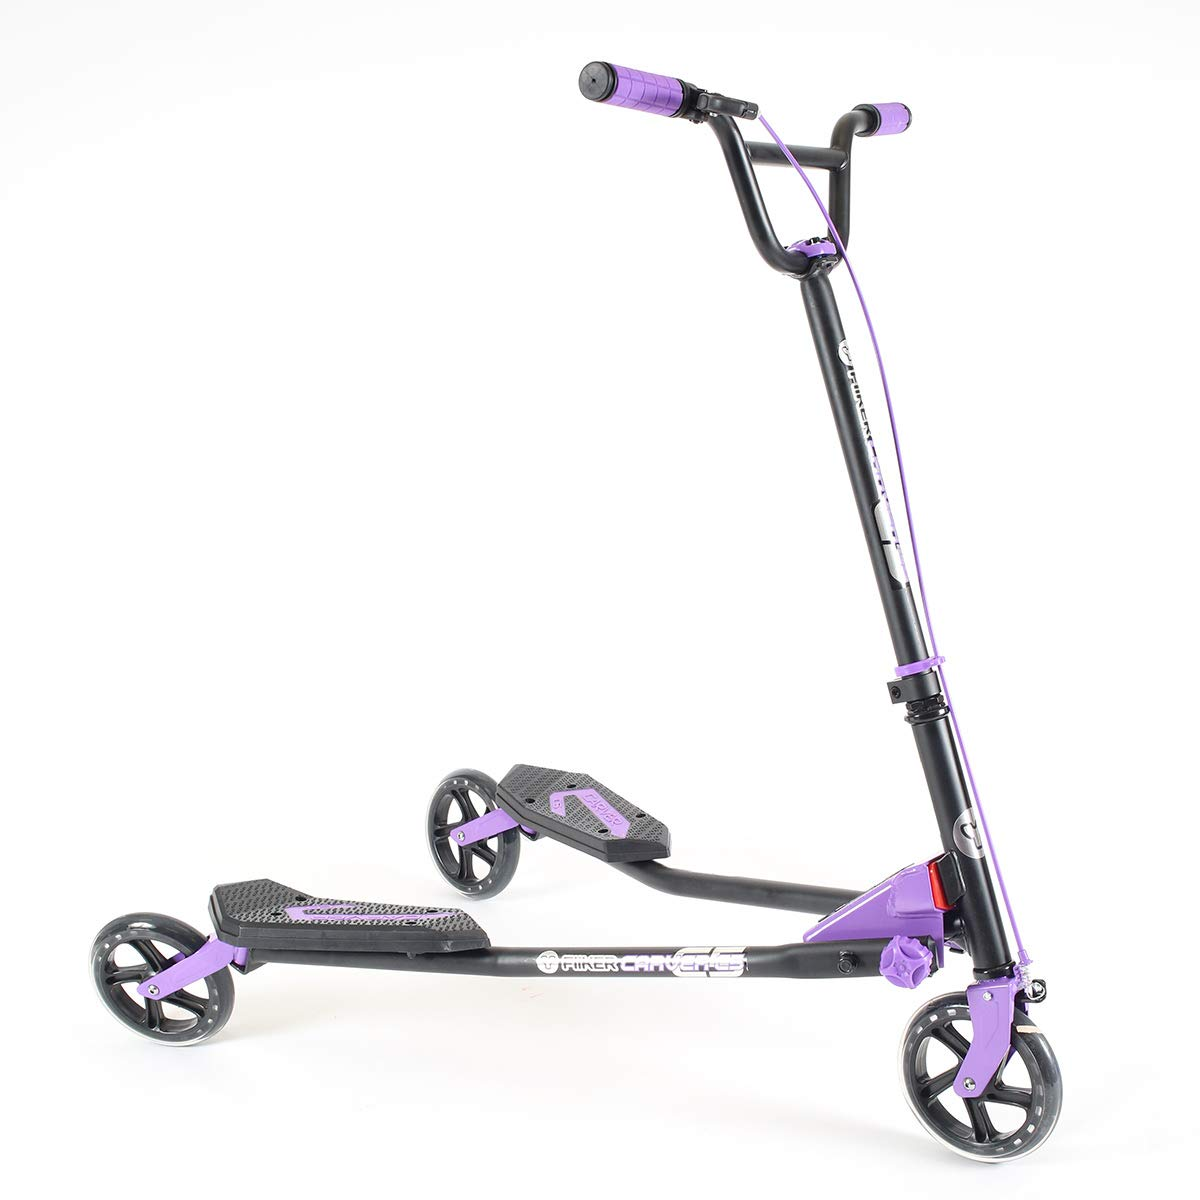 Yvolution Y Fliker Carver C5 | Kids/Adult Drifting Scooter with 3 Wheels Self Propelling